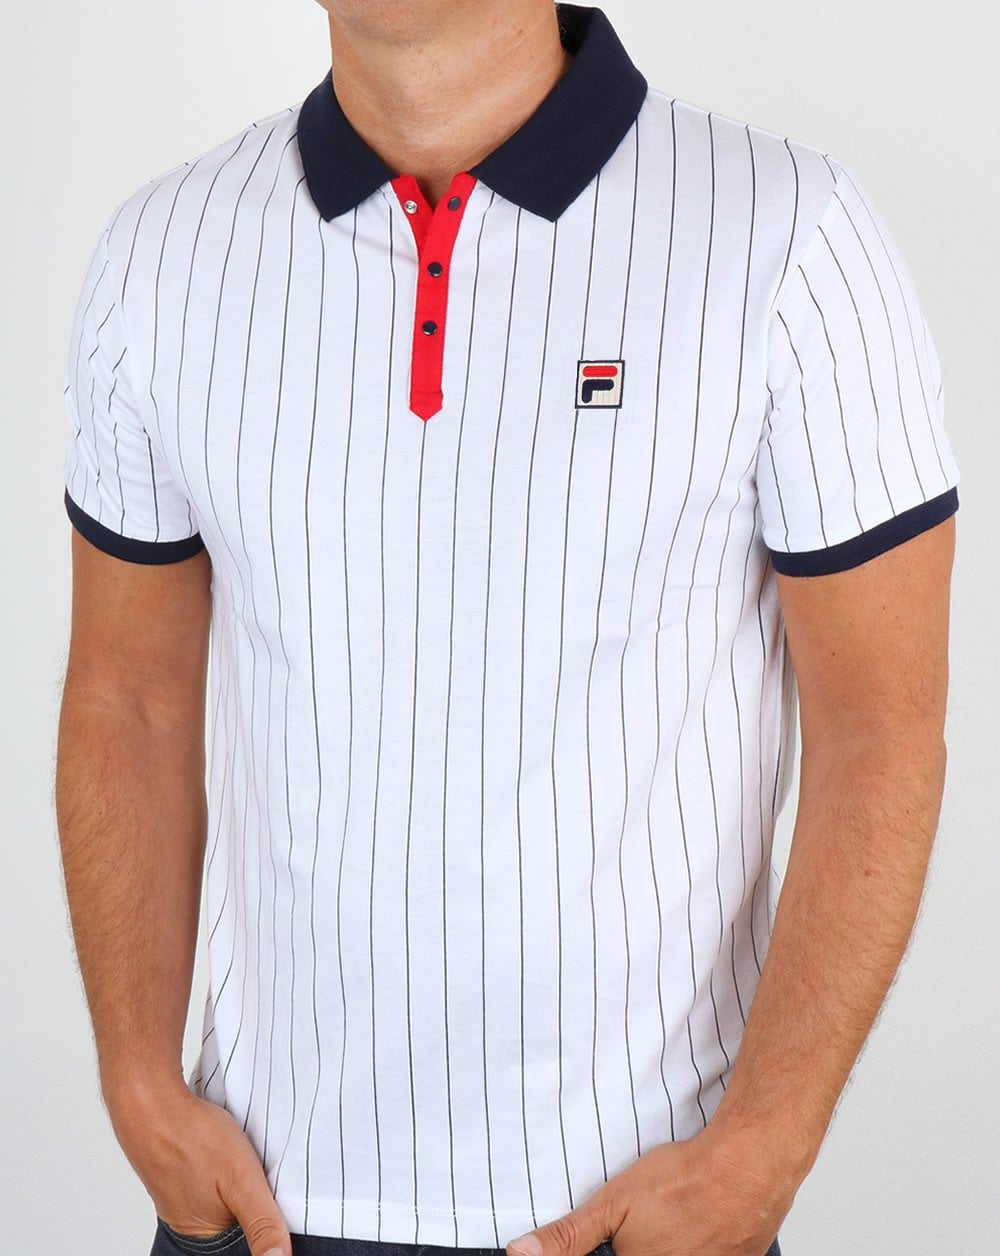 5fdb6143 Fila Vintage Settanta Polo Shirt White/Red/Navy